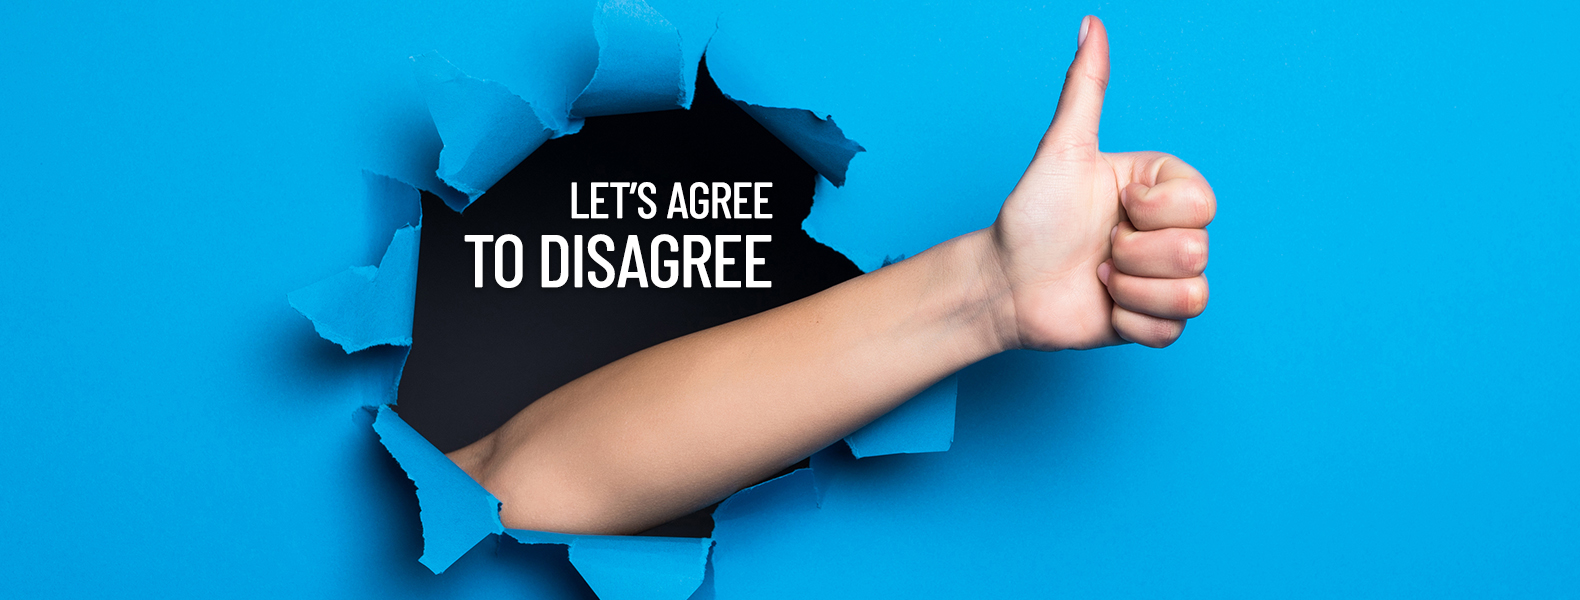 Let's agree to disagree - TIPS Blog